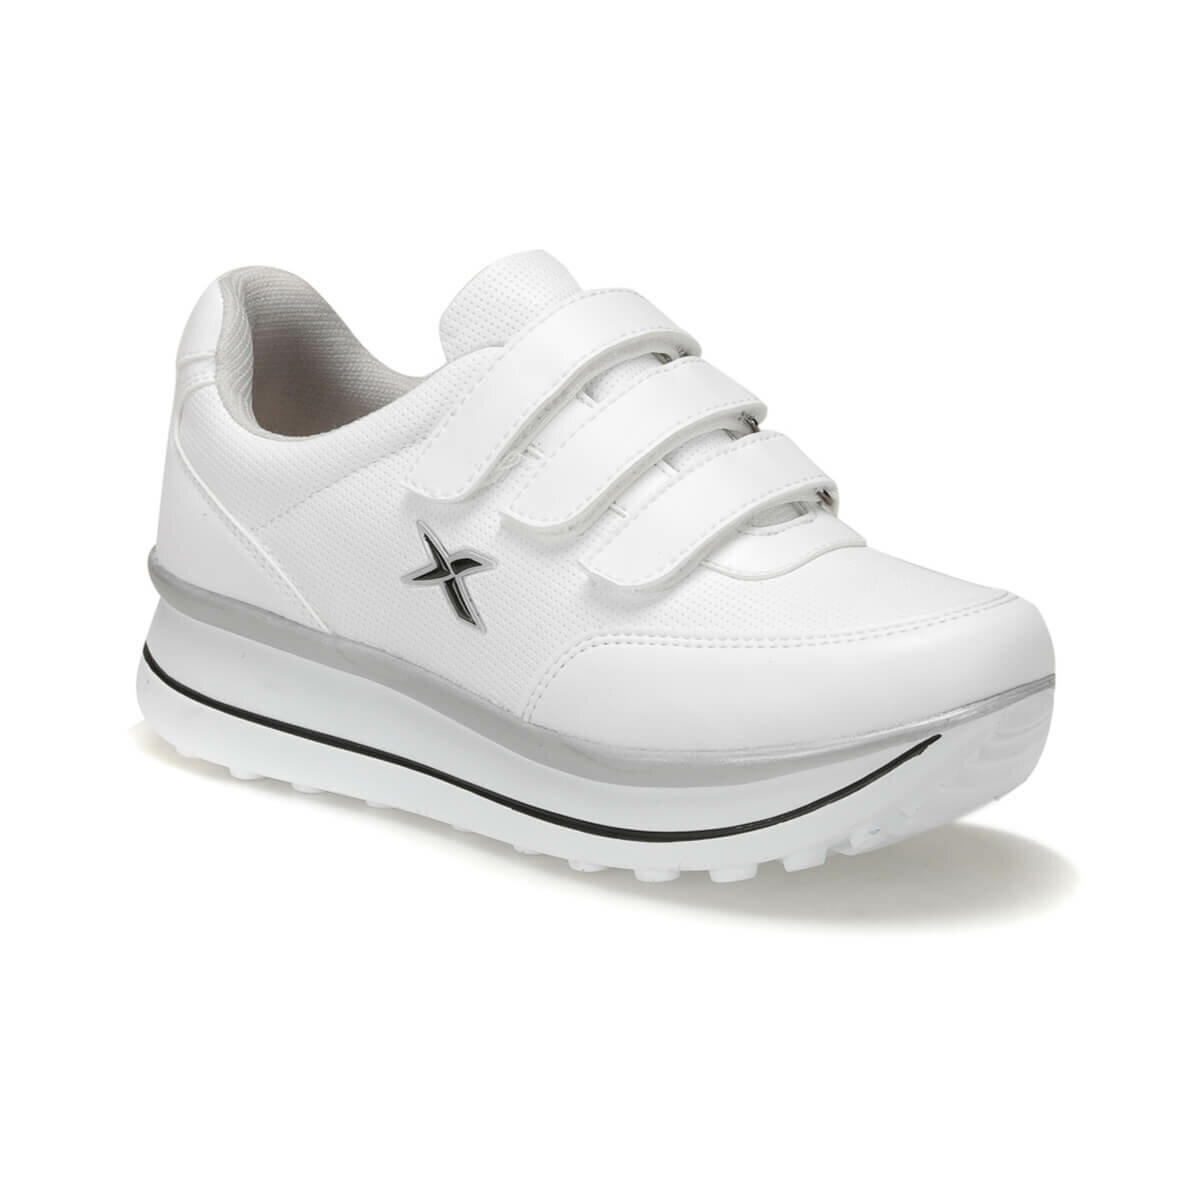 FLO PAULET 9PR White Women 'S Sneaker Shoes KINETIX